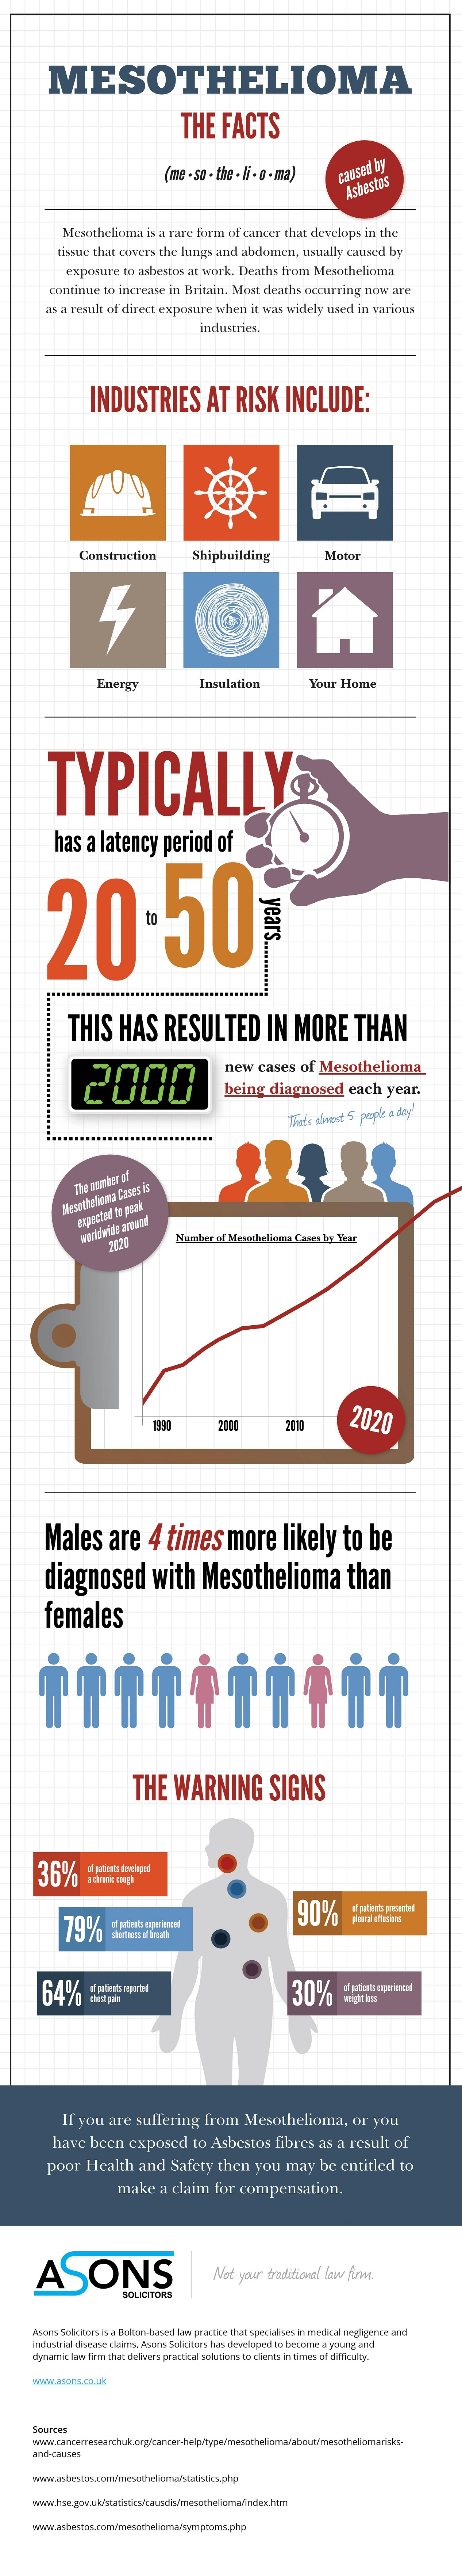 Mesothelioma: The Facts